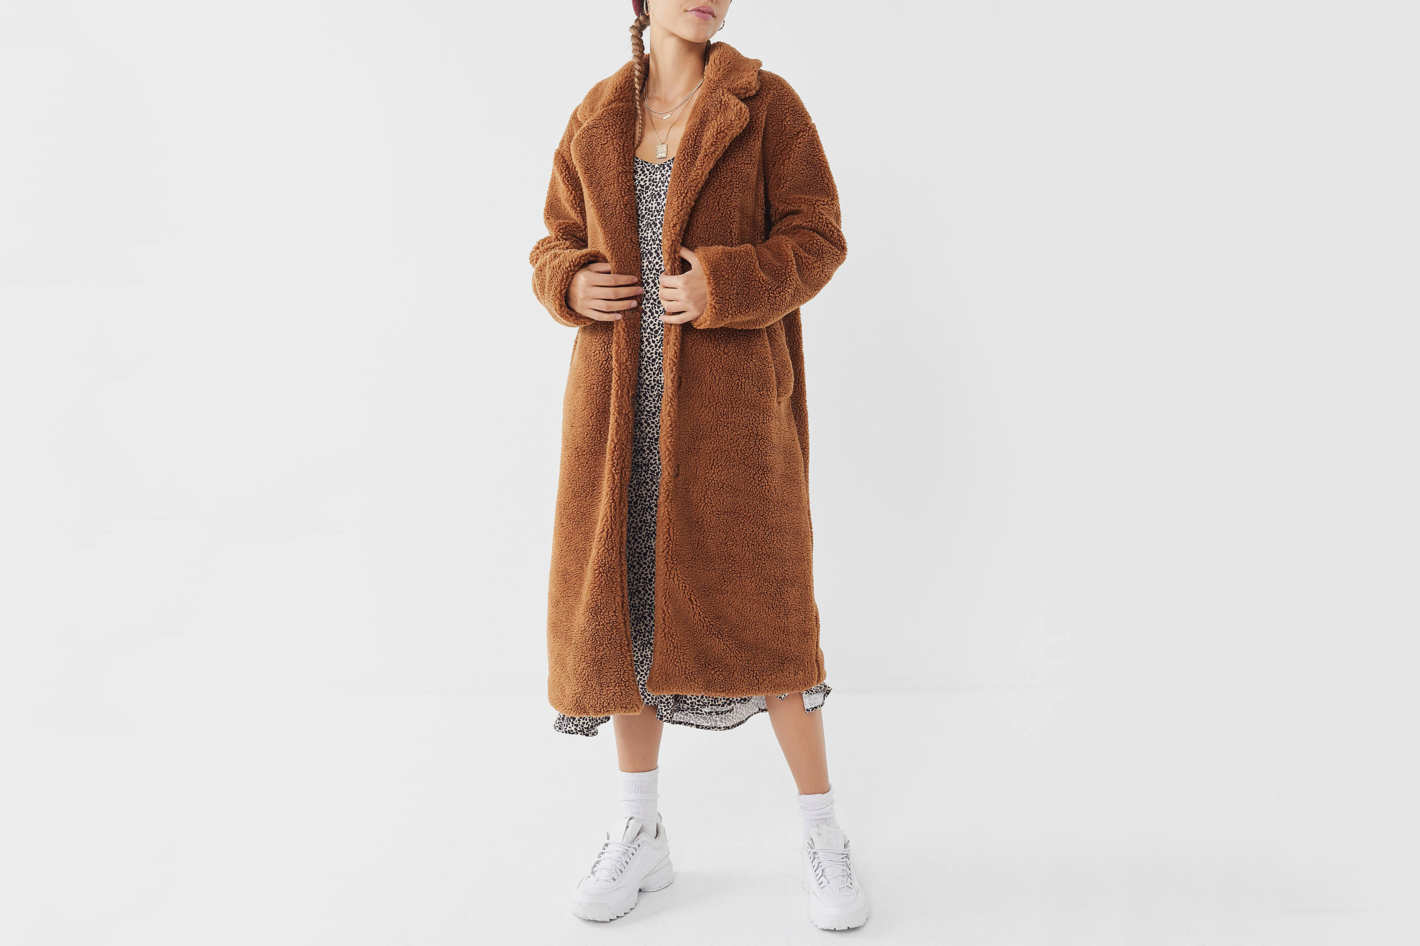 Urban Outfitters Teddy Duster Coat